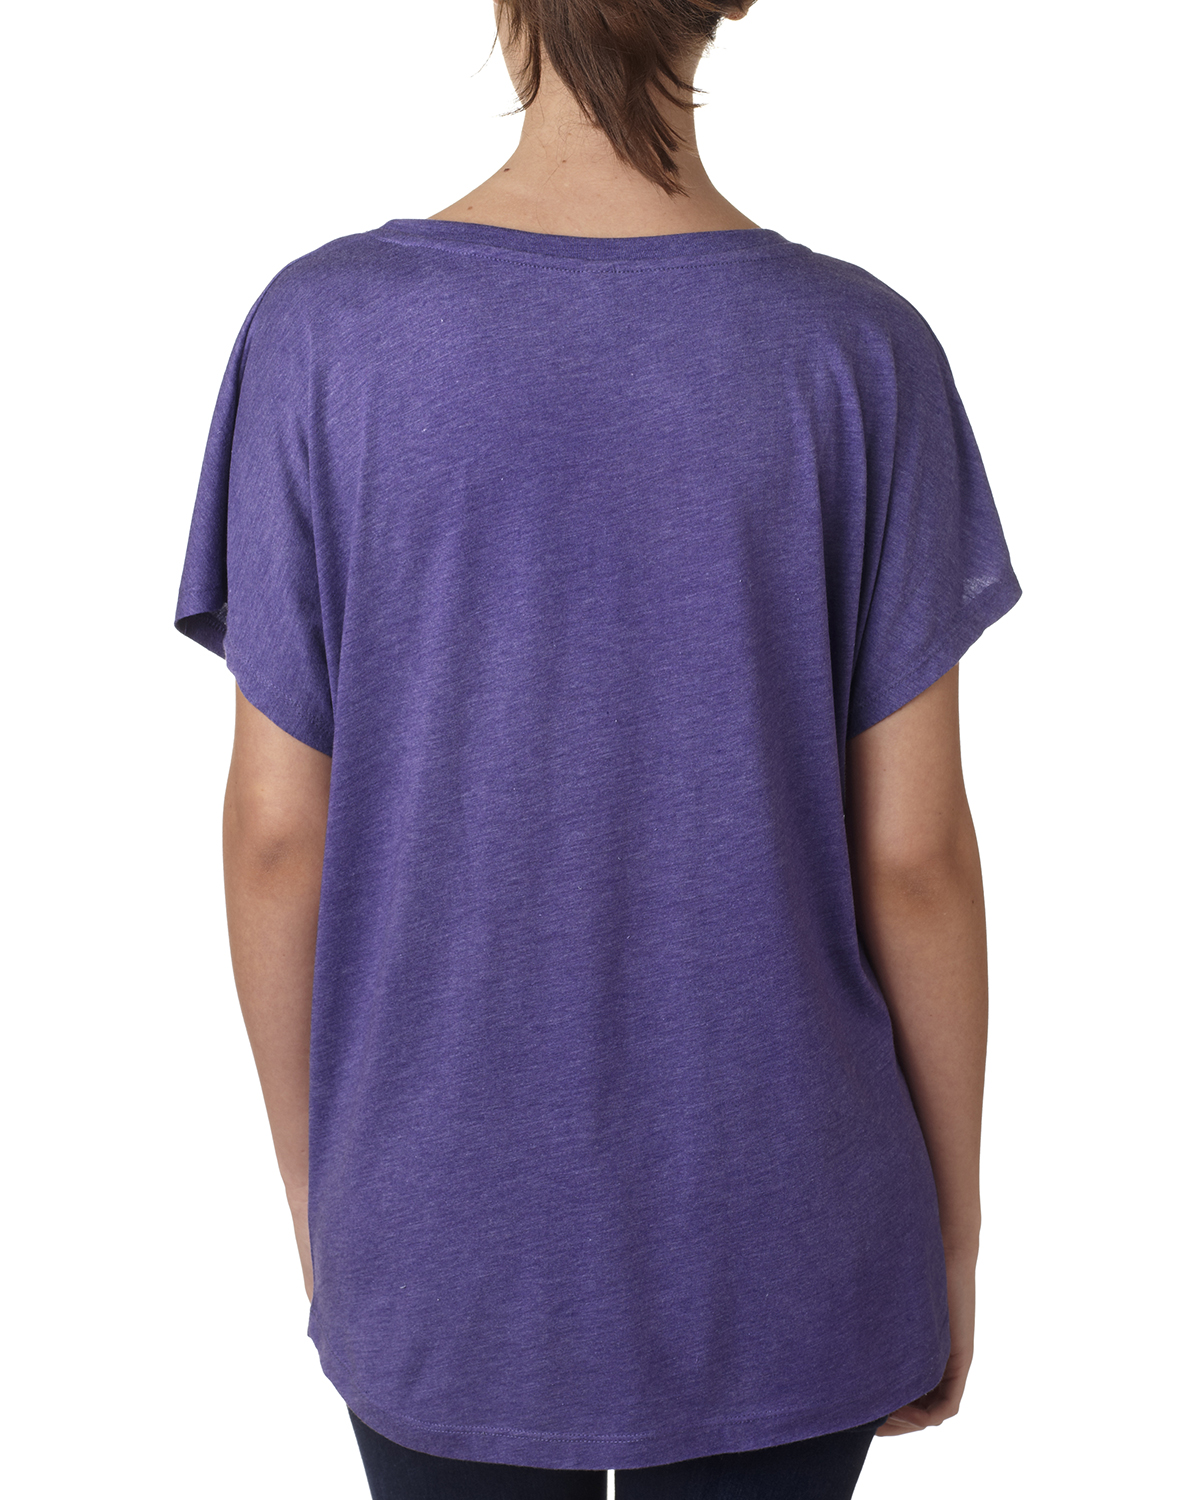 NEW-Next-Level-Junior-Fit-Triblend-Dolman-Sleeve-Relexed-Fit-T-Shirt-B-6760 thumbnail 18